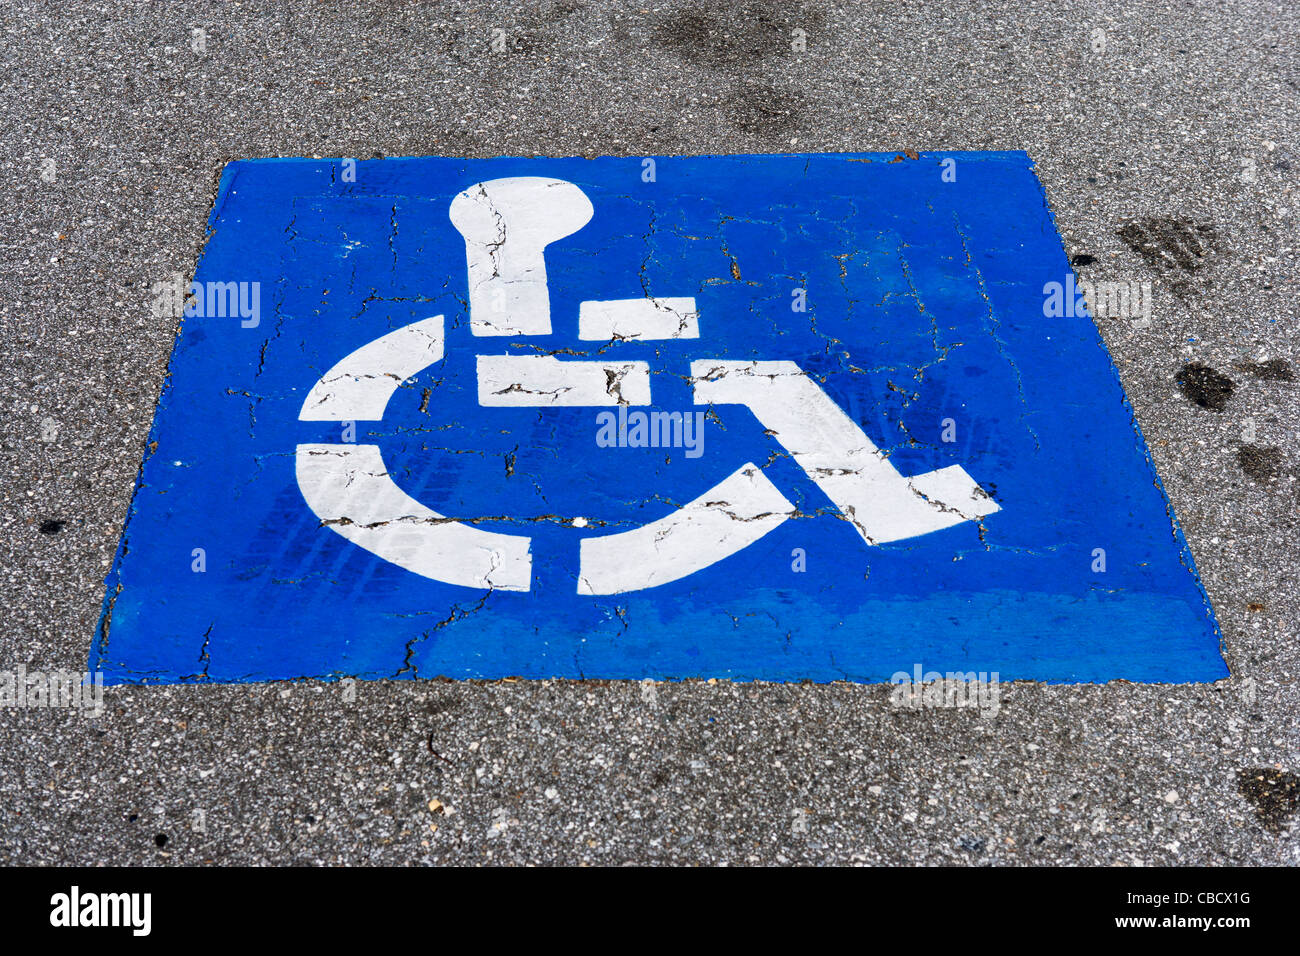 Disabled parking space, Florida, USA - Stock Image